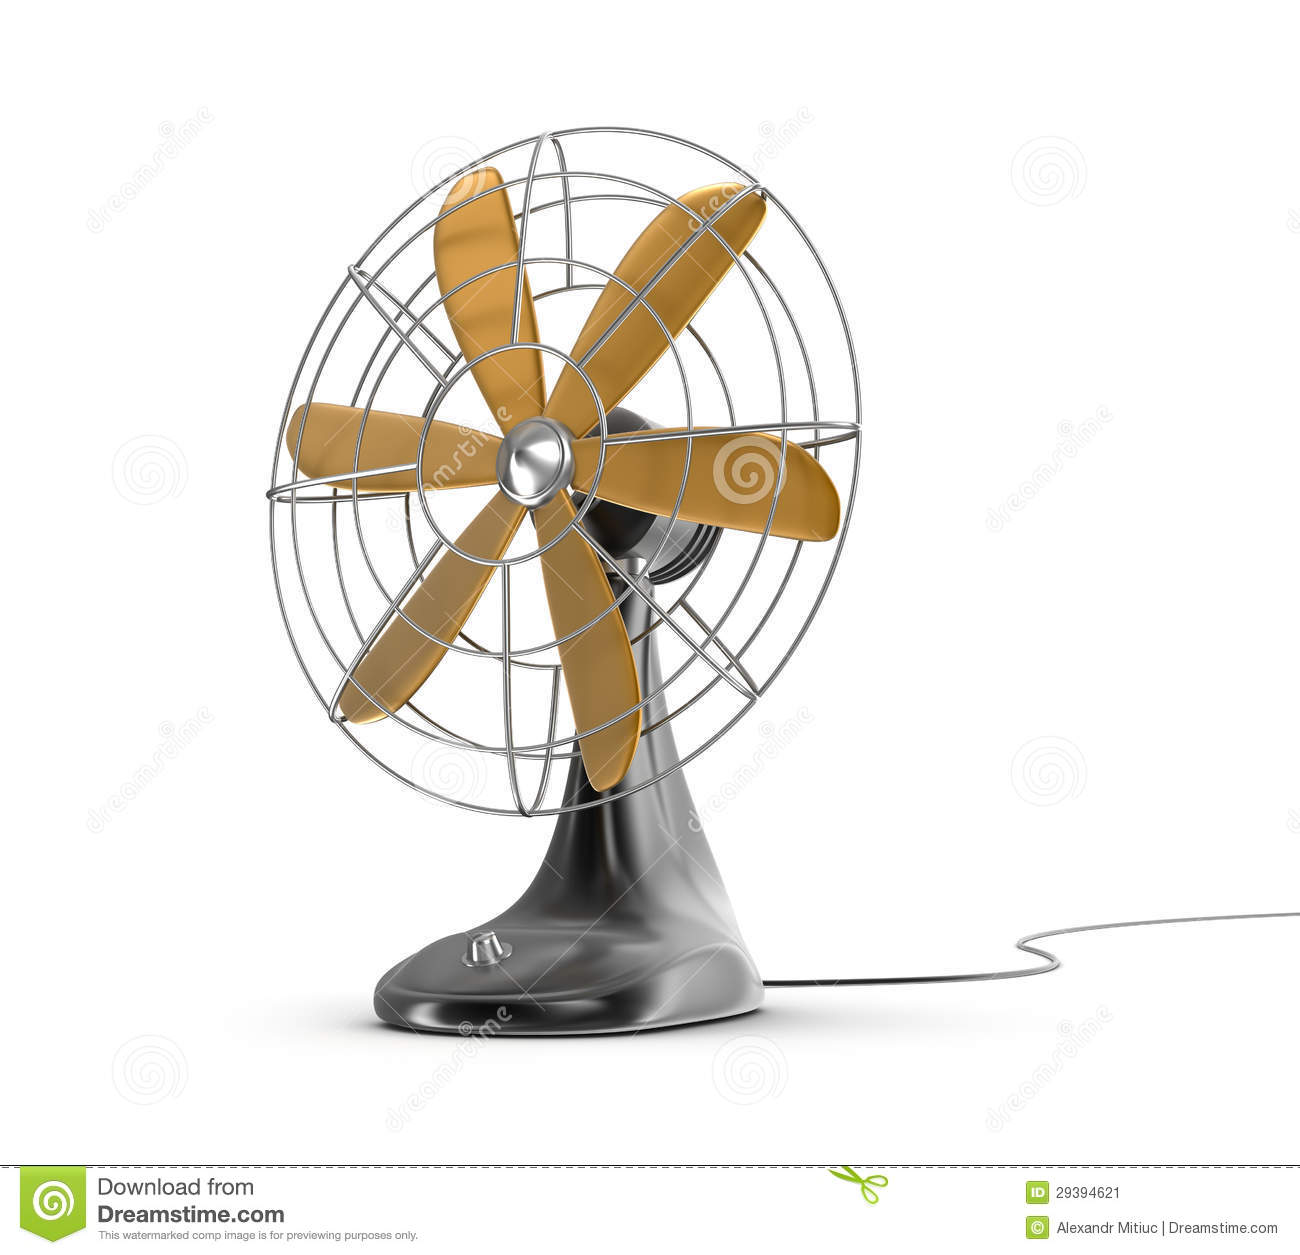 Electric Fan Cartoon : Old style electricity switch royalty free stock image